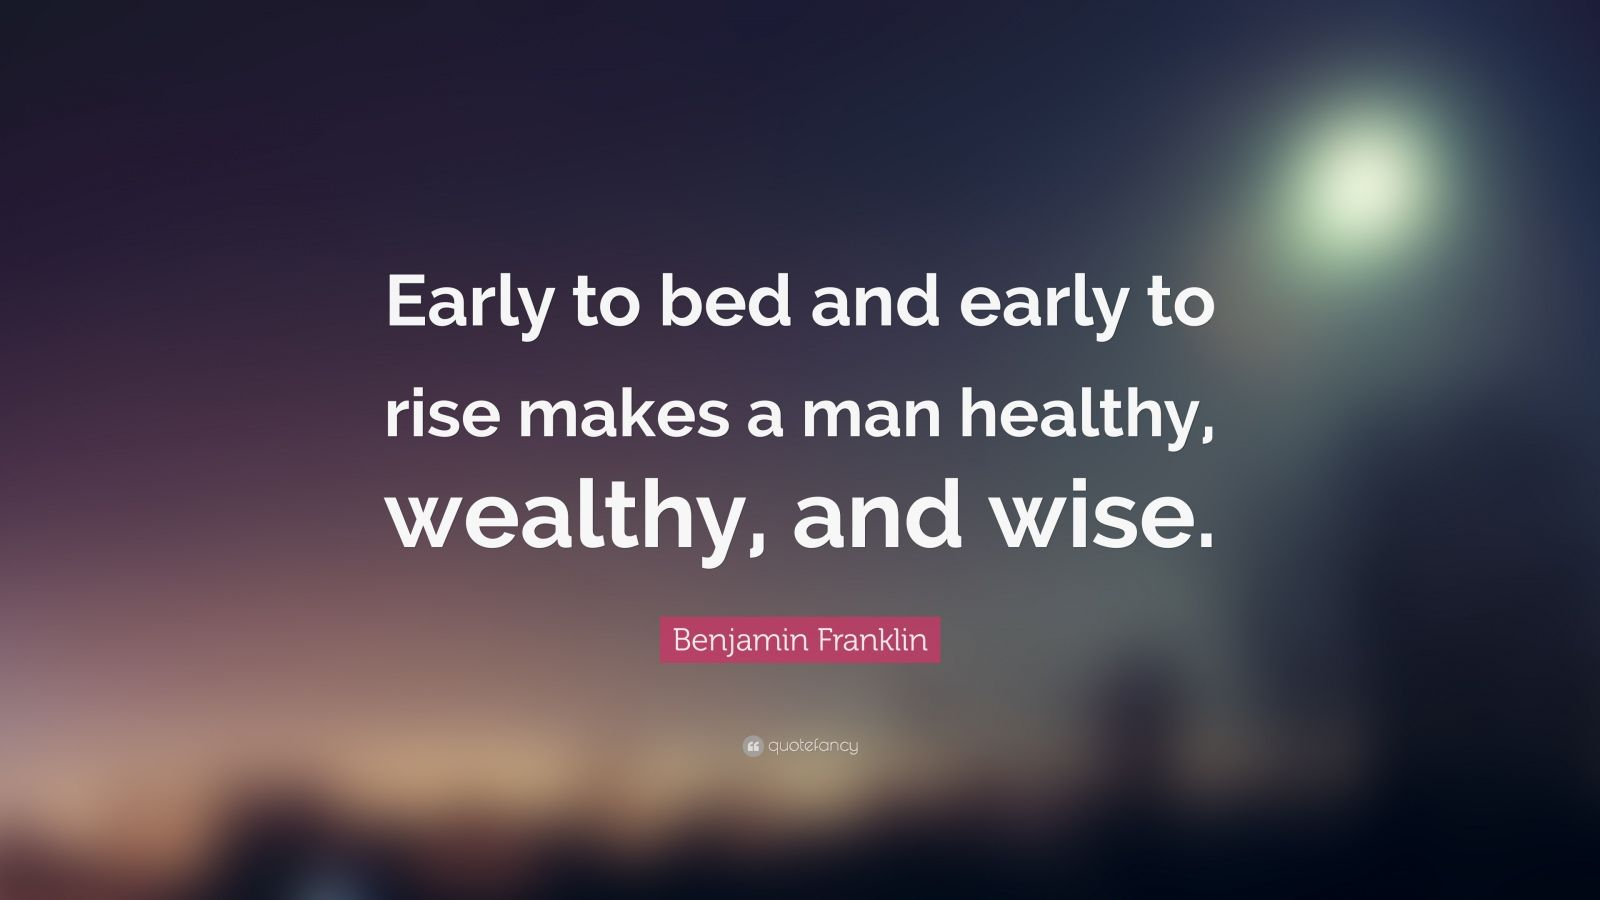 Benjamin Franklin Quotes Wallpaper Benjamin Franklin Quote Early To Bed And Early To Rise